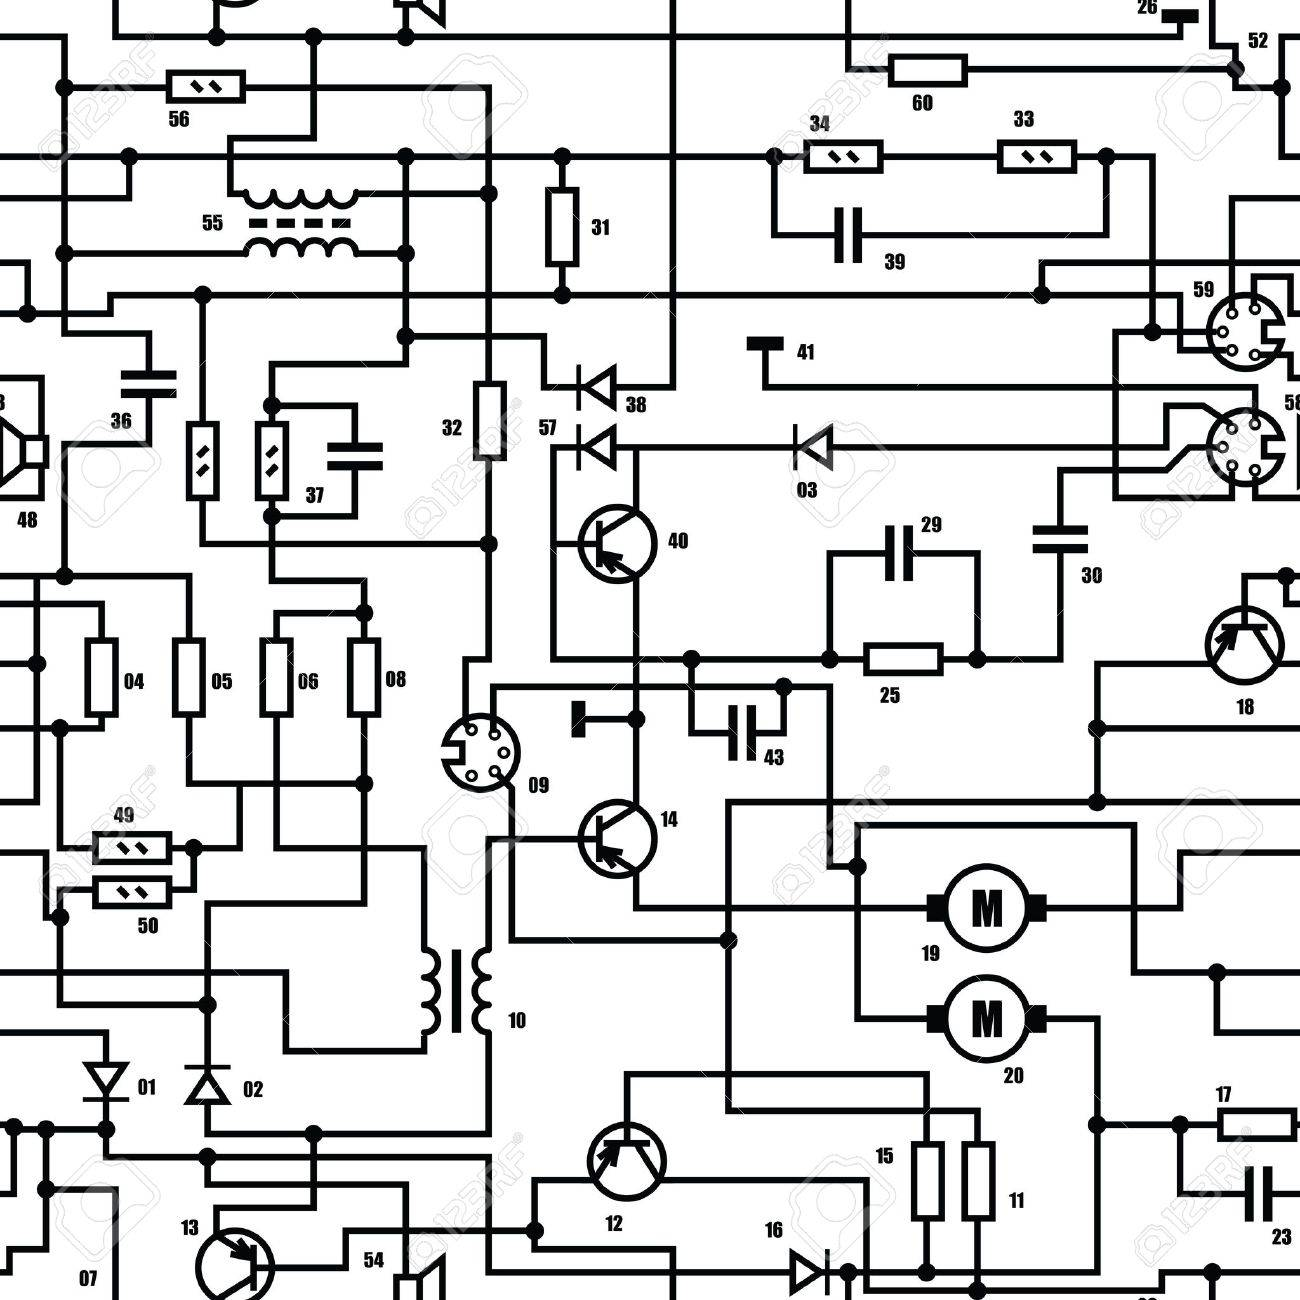 electronic black and white diagram   technical schematic seamless    vector   electronic black and white diagram   technical schematic seamless